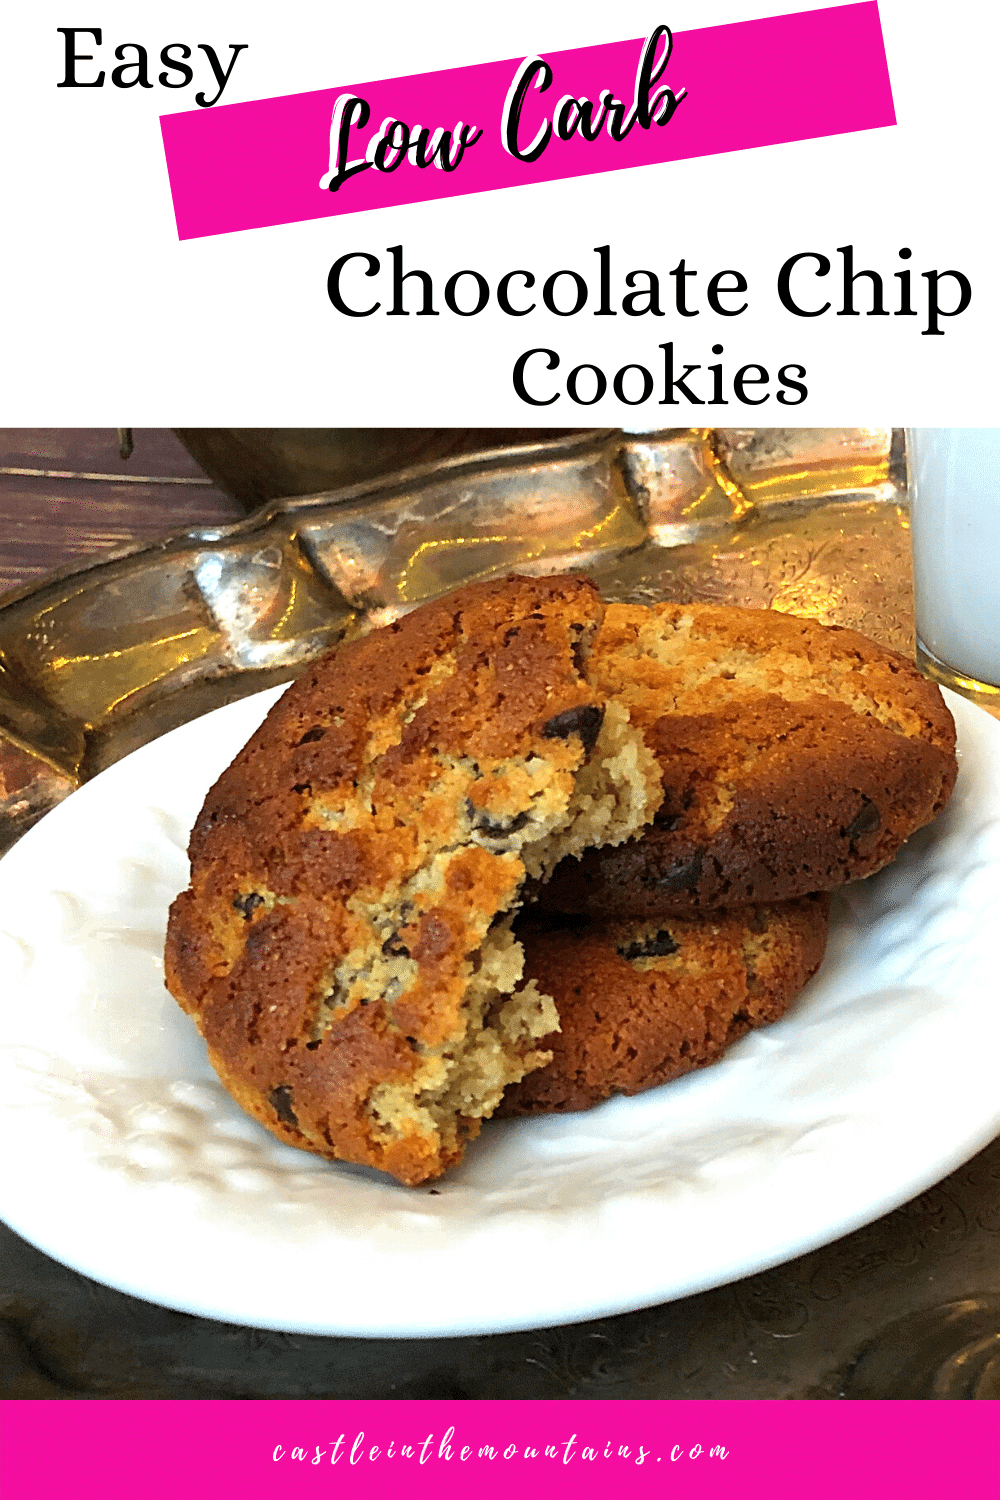 Chocolate Chip Cookies - How to make this simple Keto Cookie!